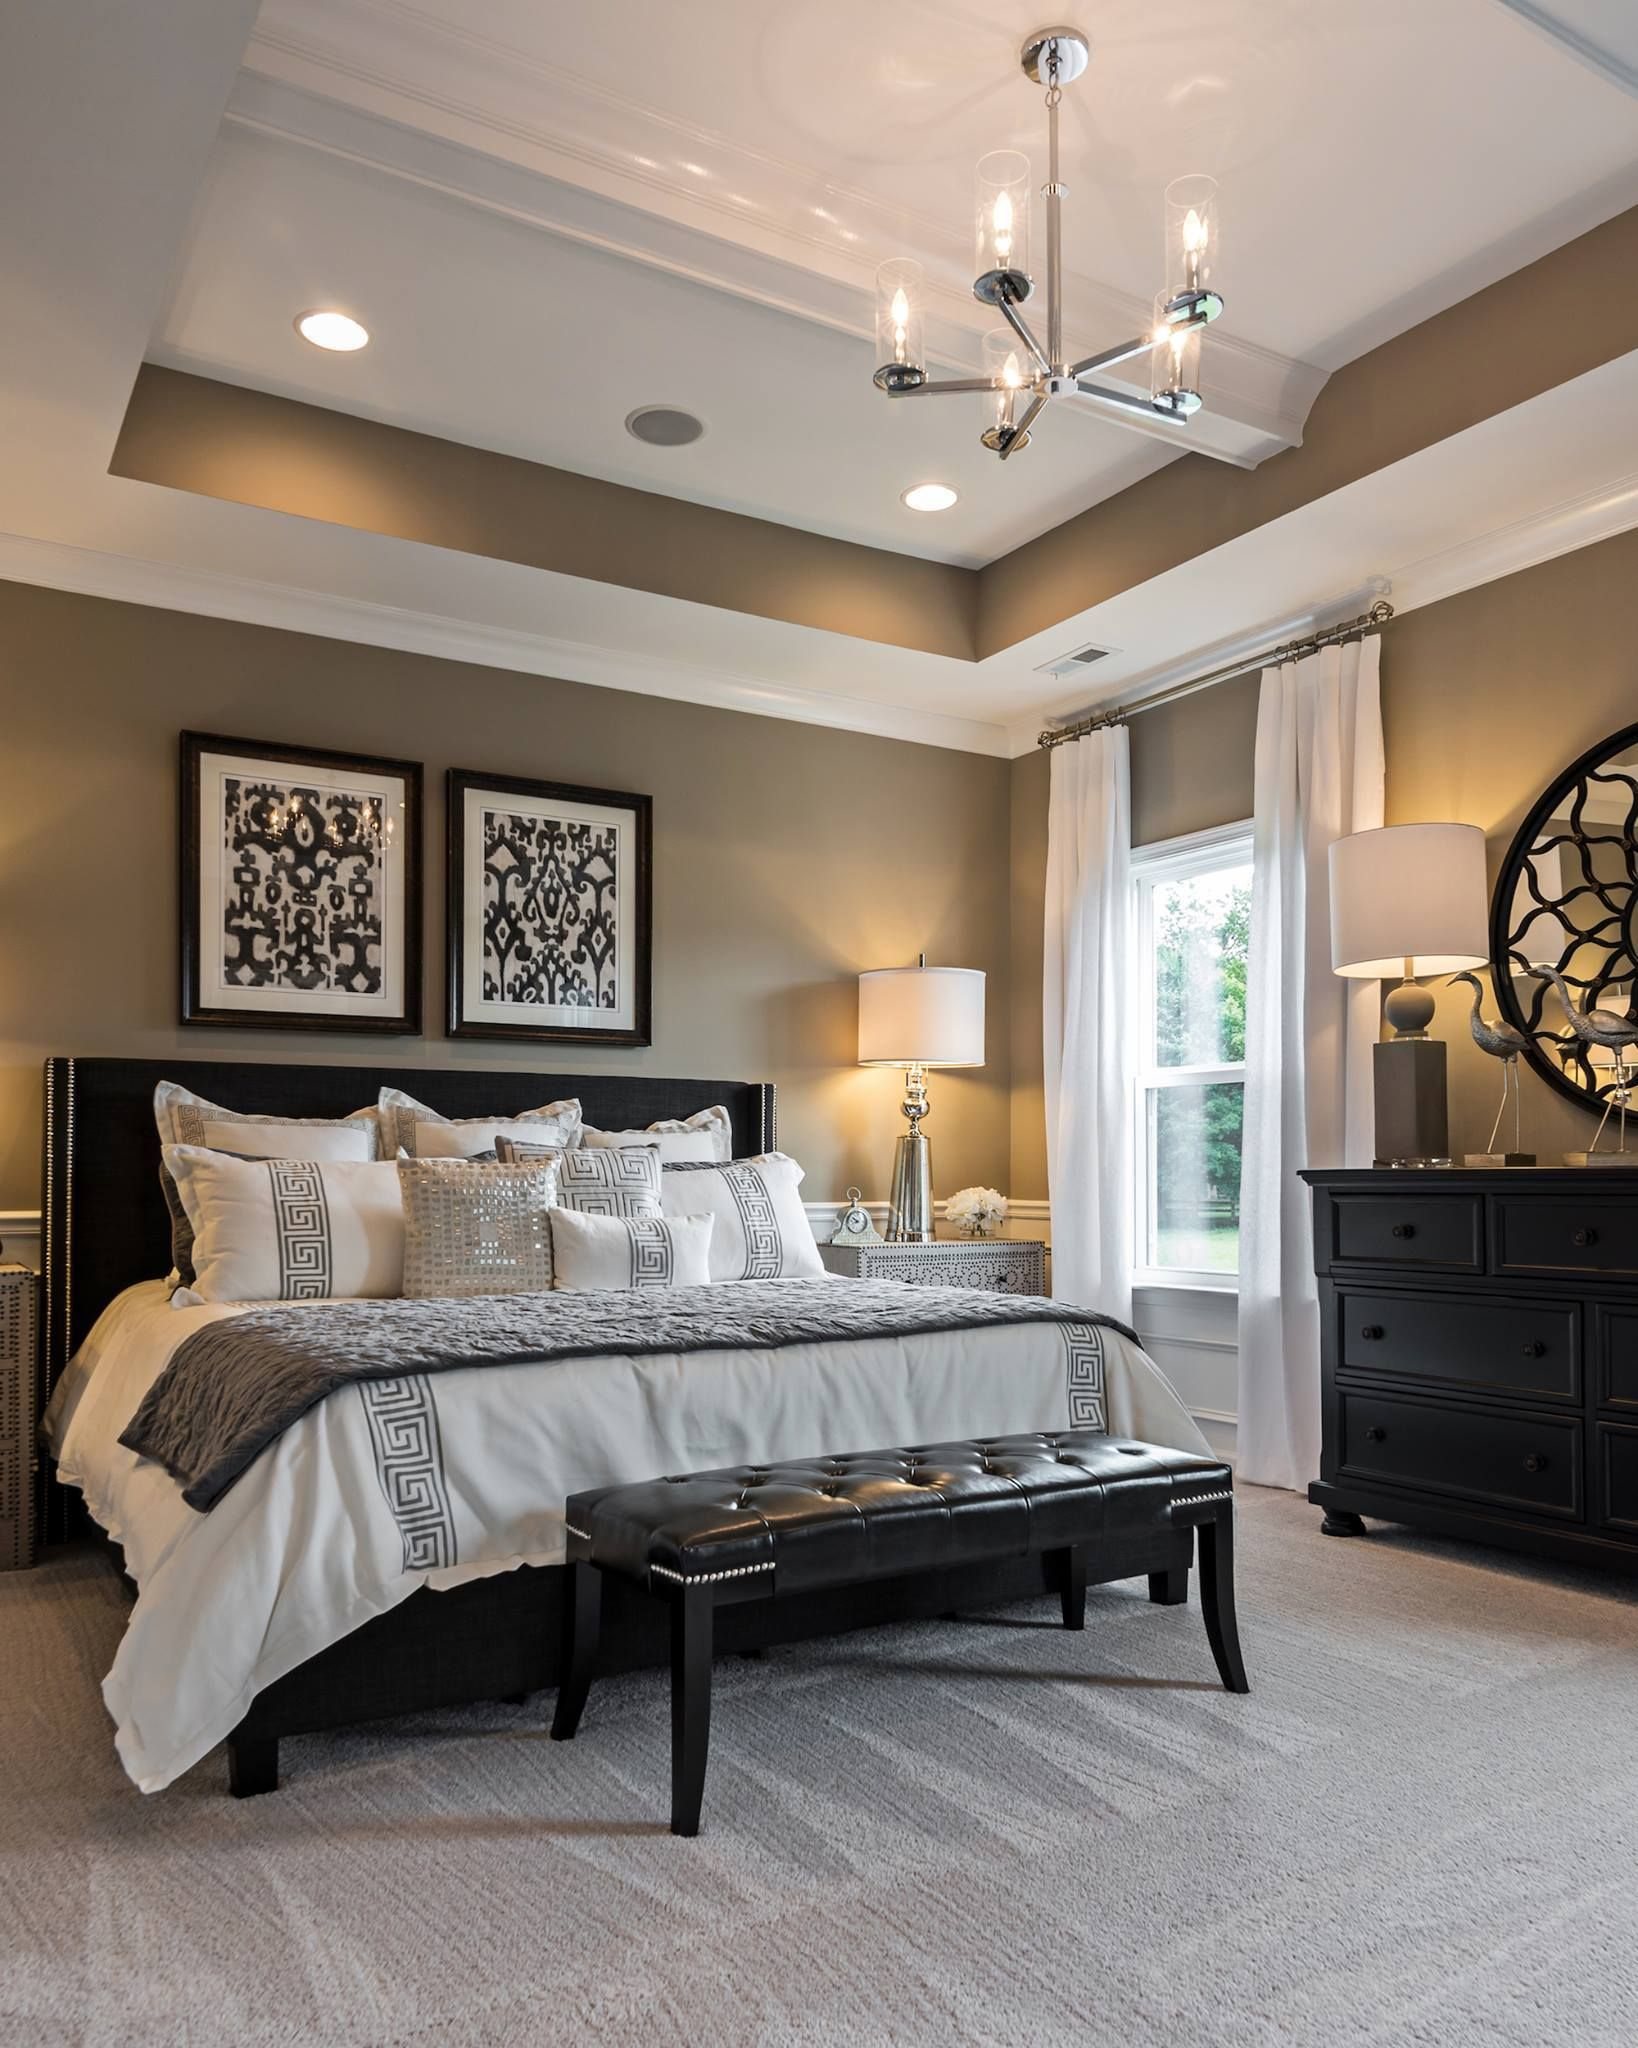 Find your dream suite this weekend  Master bedroom remodel